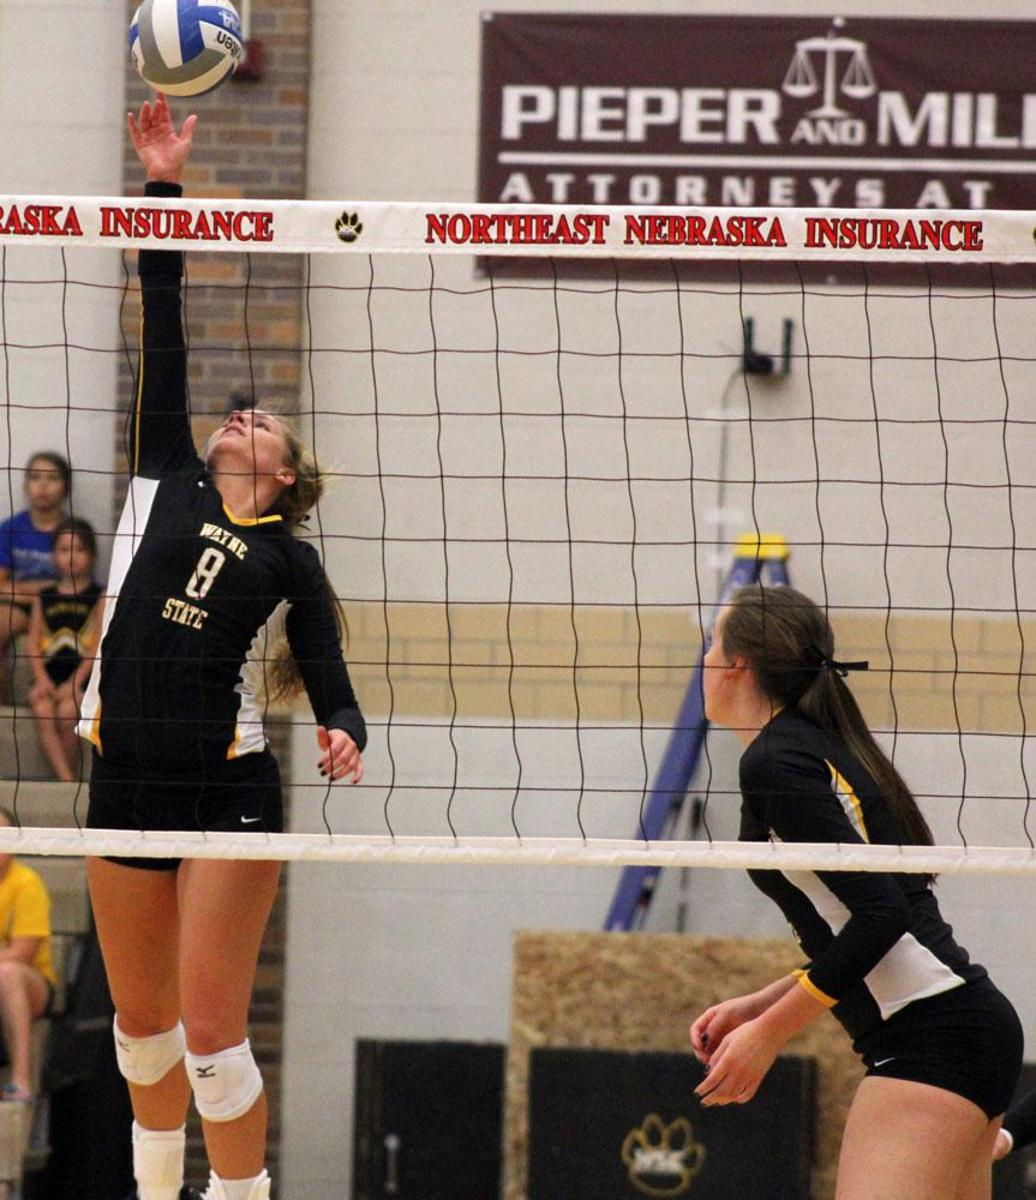 Katie Hughes collects a kill in a match earlier in the year. She led the team last night with 15 kills.